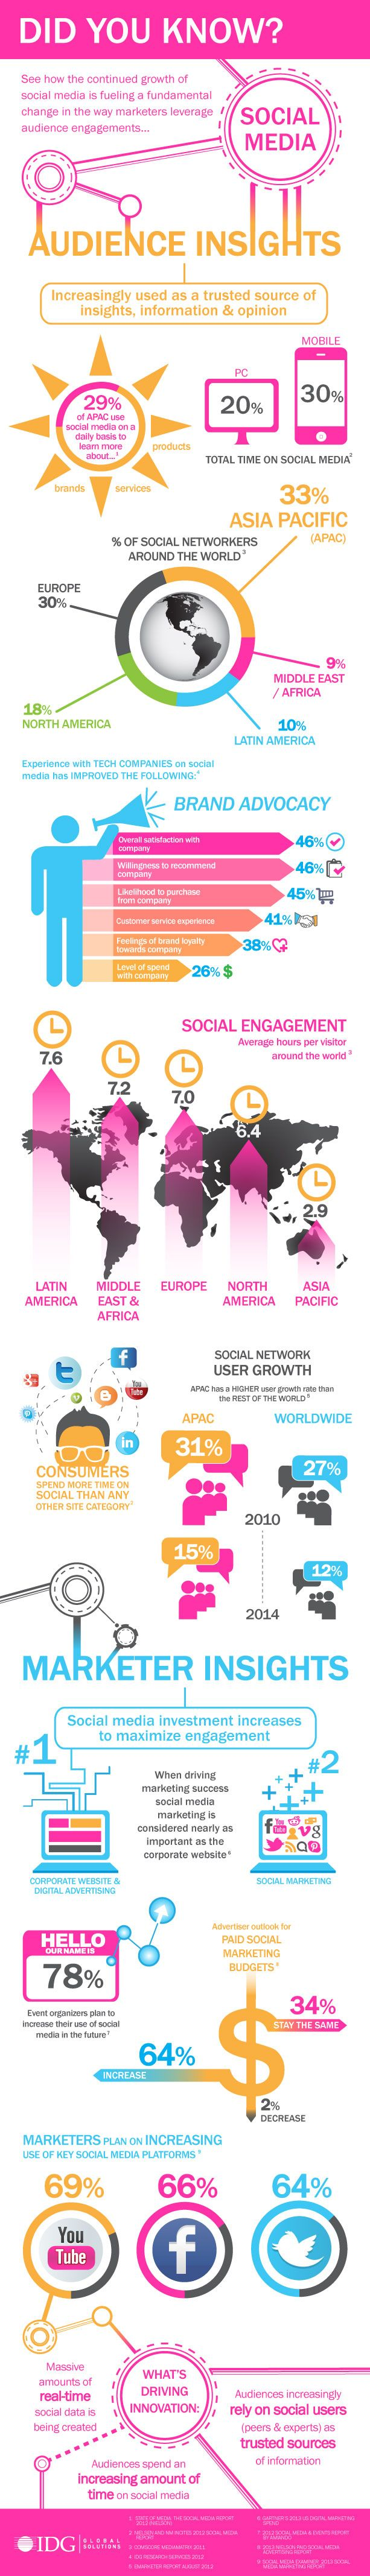 Marketer and Audience Insights on Social Media Worldwide [infographic]